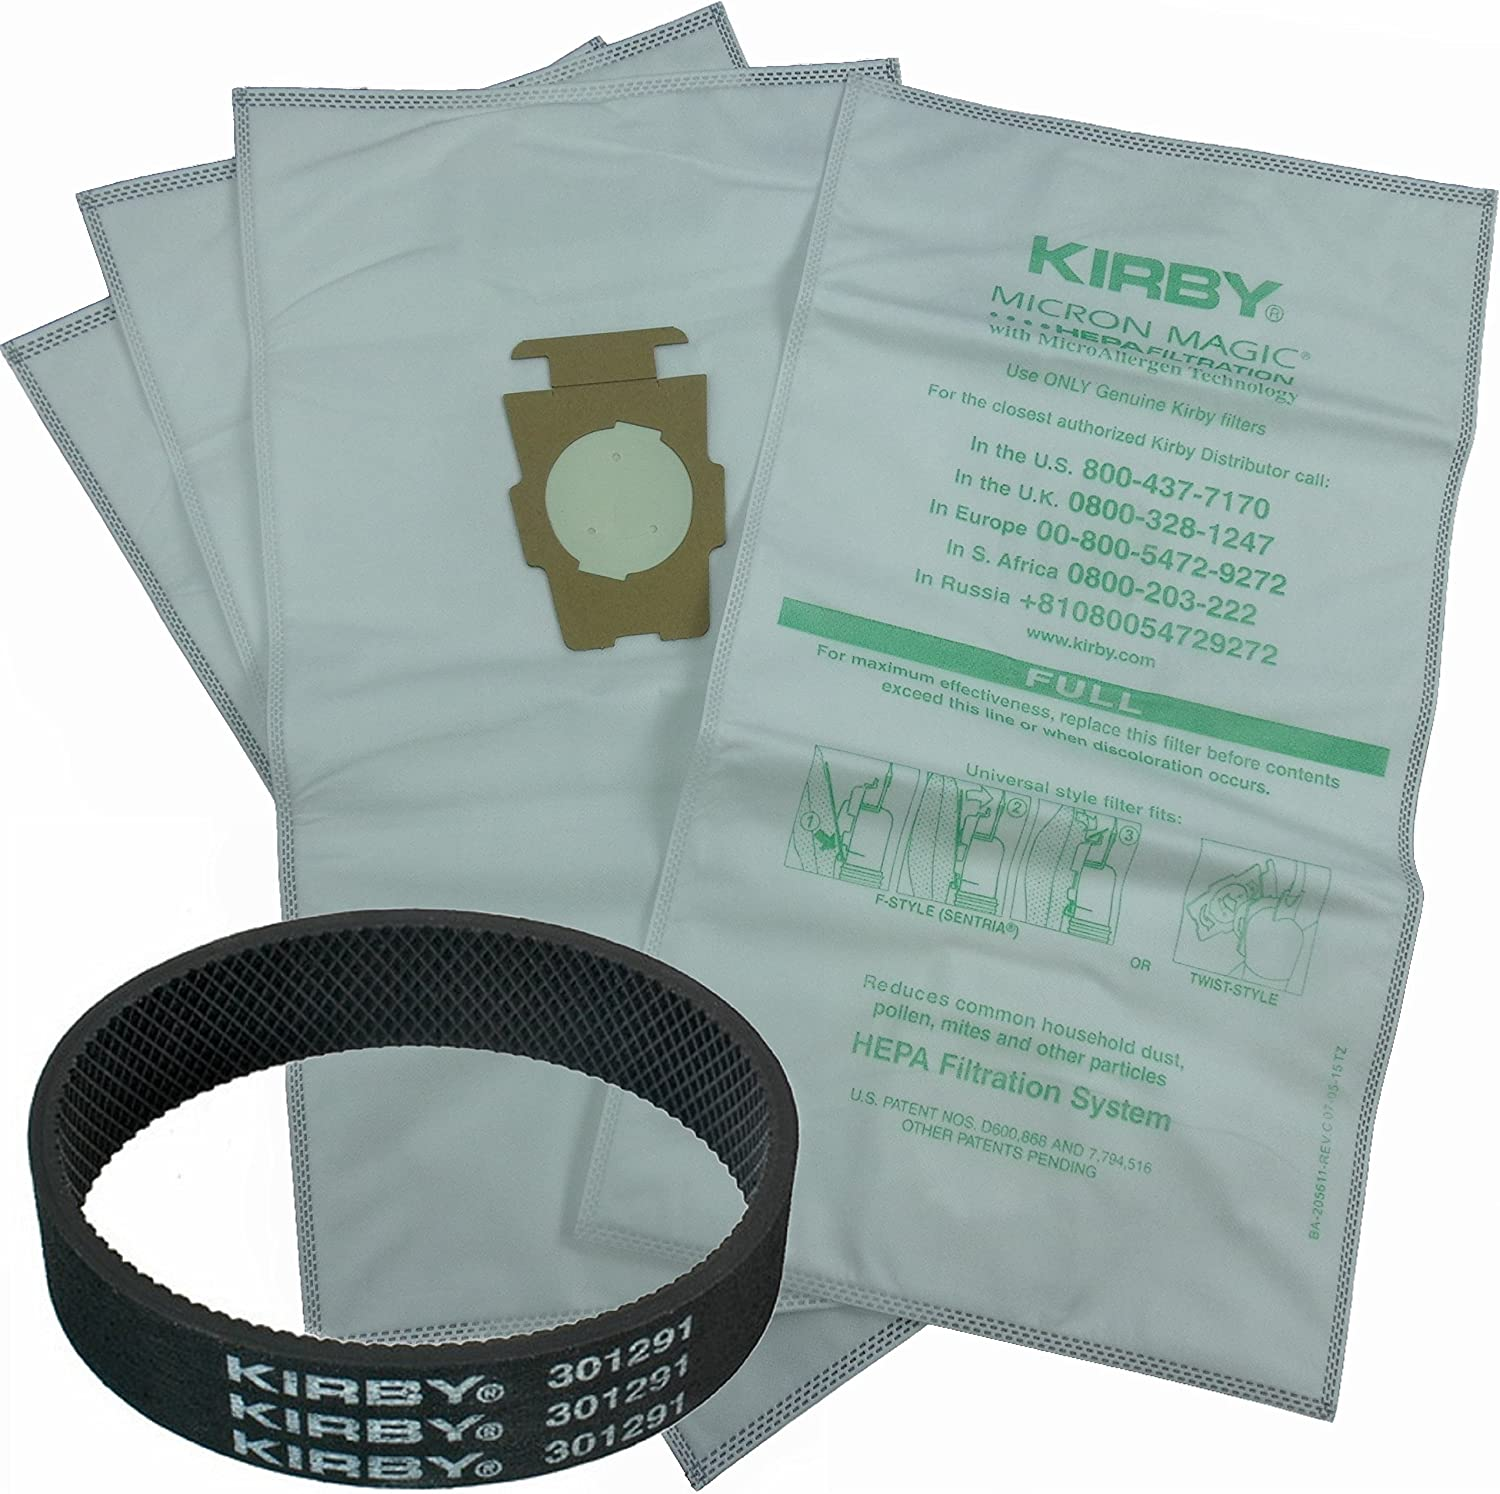 Genuine Kirby Micron Magic HEPA Filtration Universal Style 1 Non Genuine Belt